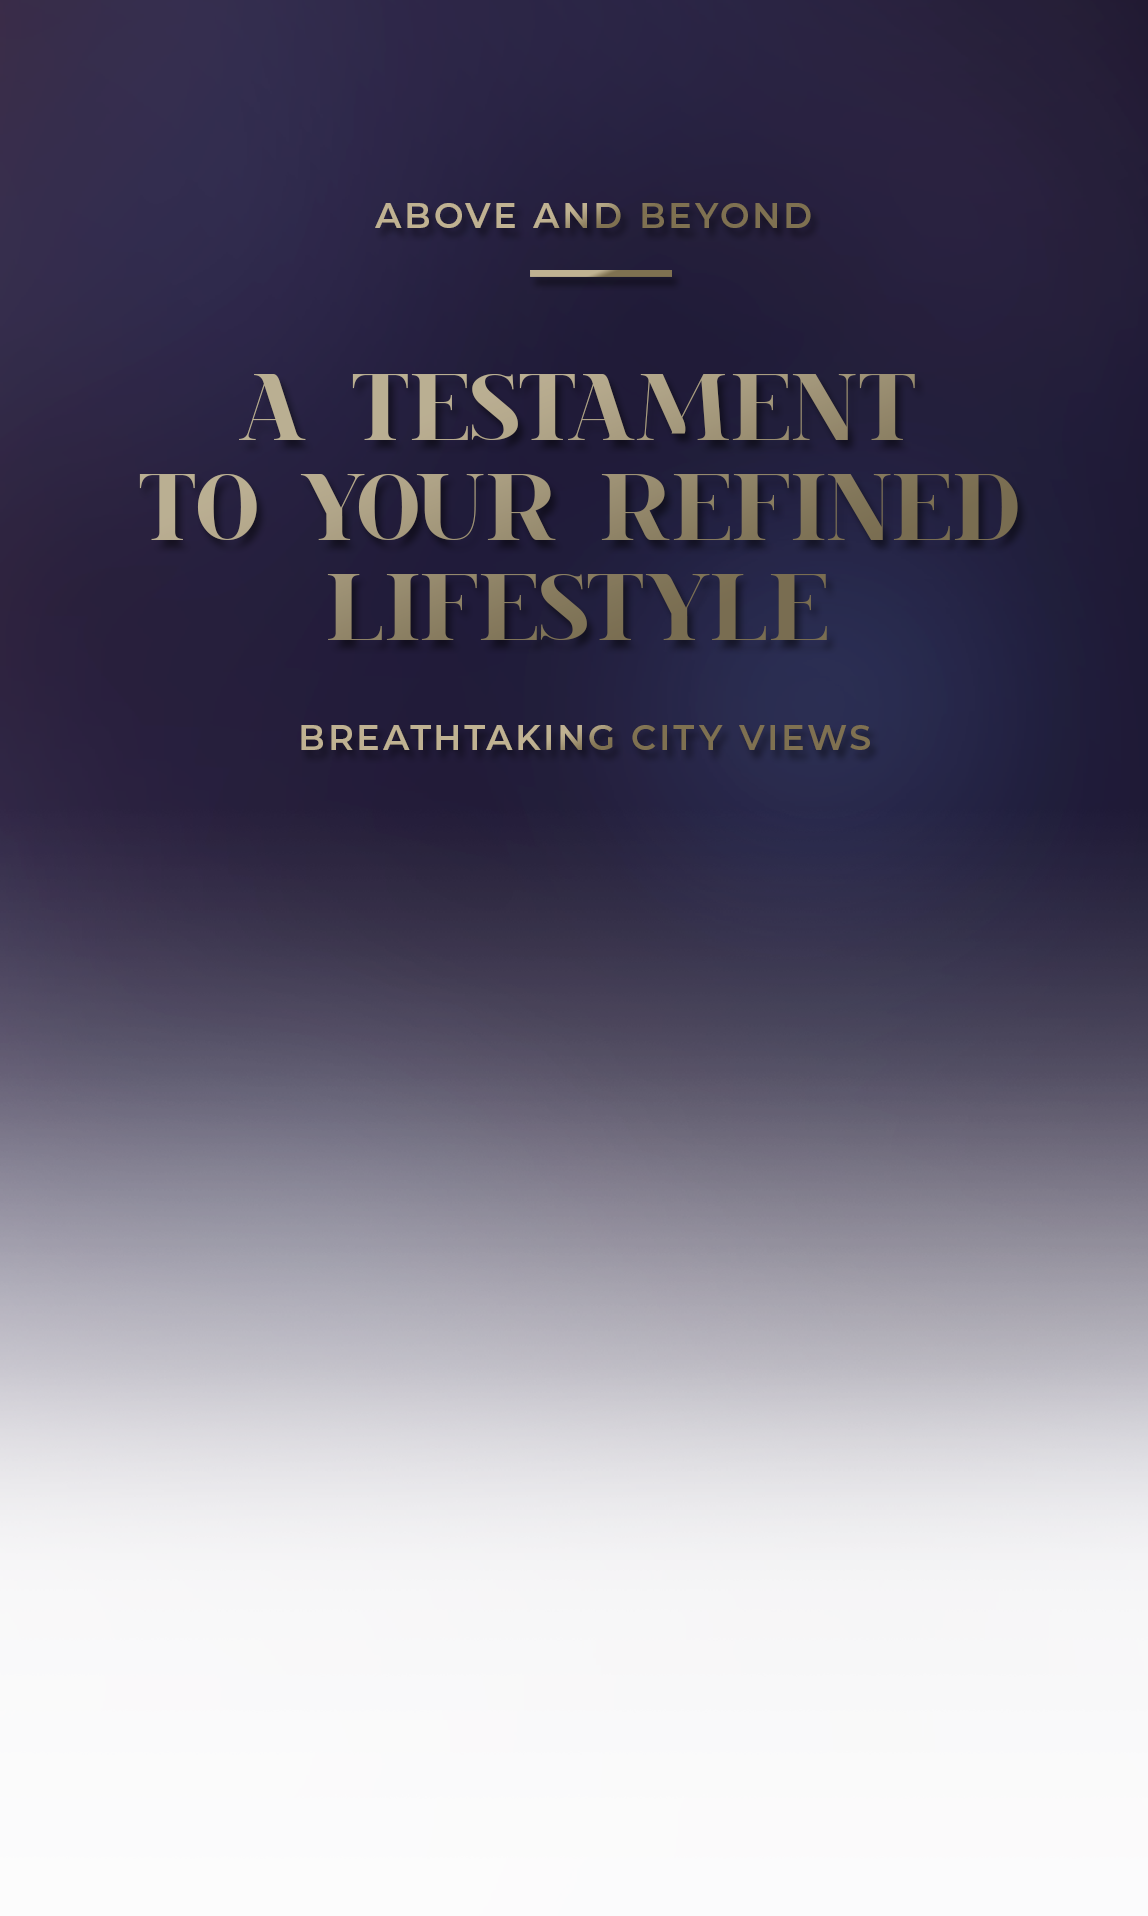 Text: Above and beyond. A testament to your refined lifestyle. Breathtaking city views.